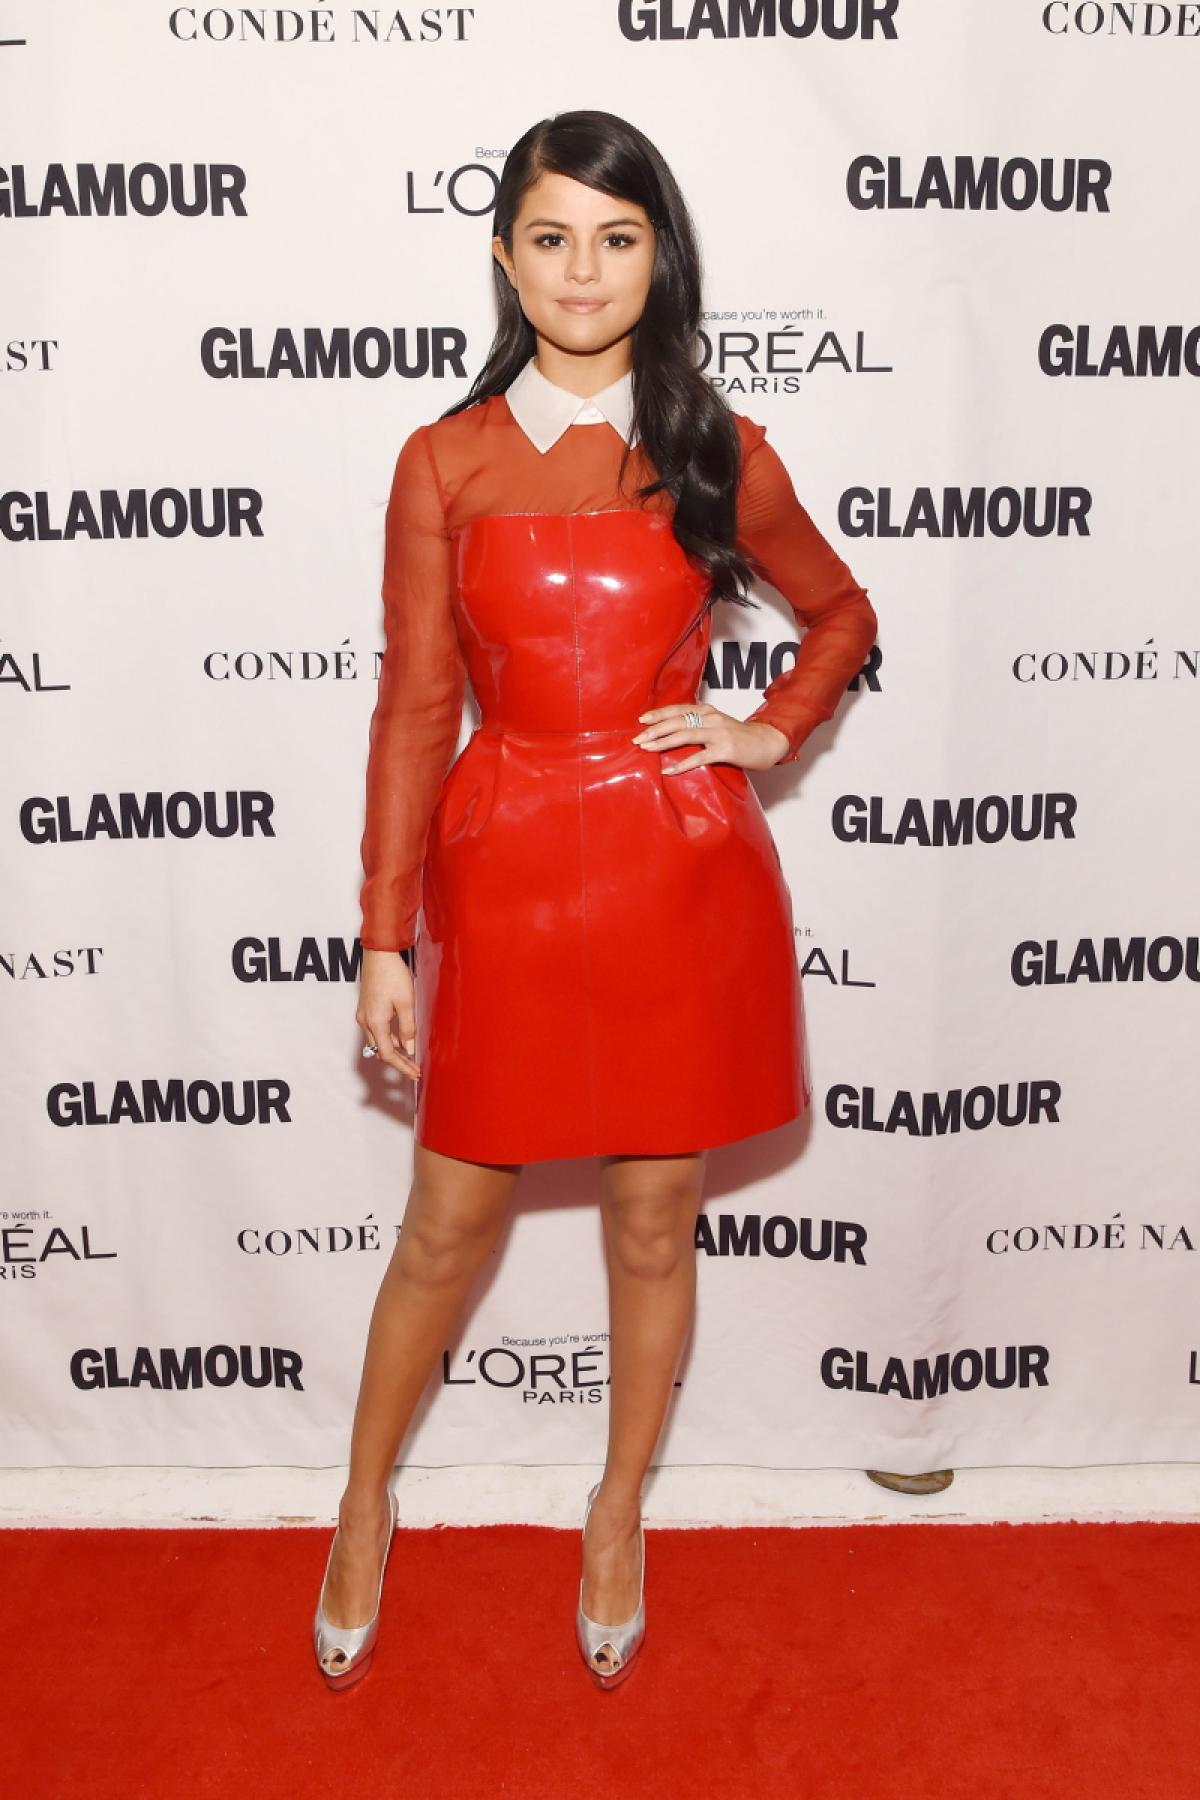 Selena Gomez 'Glamour' Women Of The Year Awards 2015 Pictures